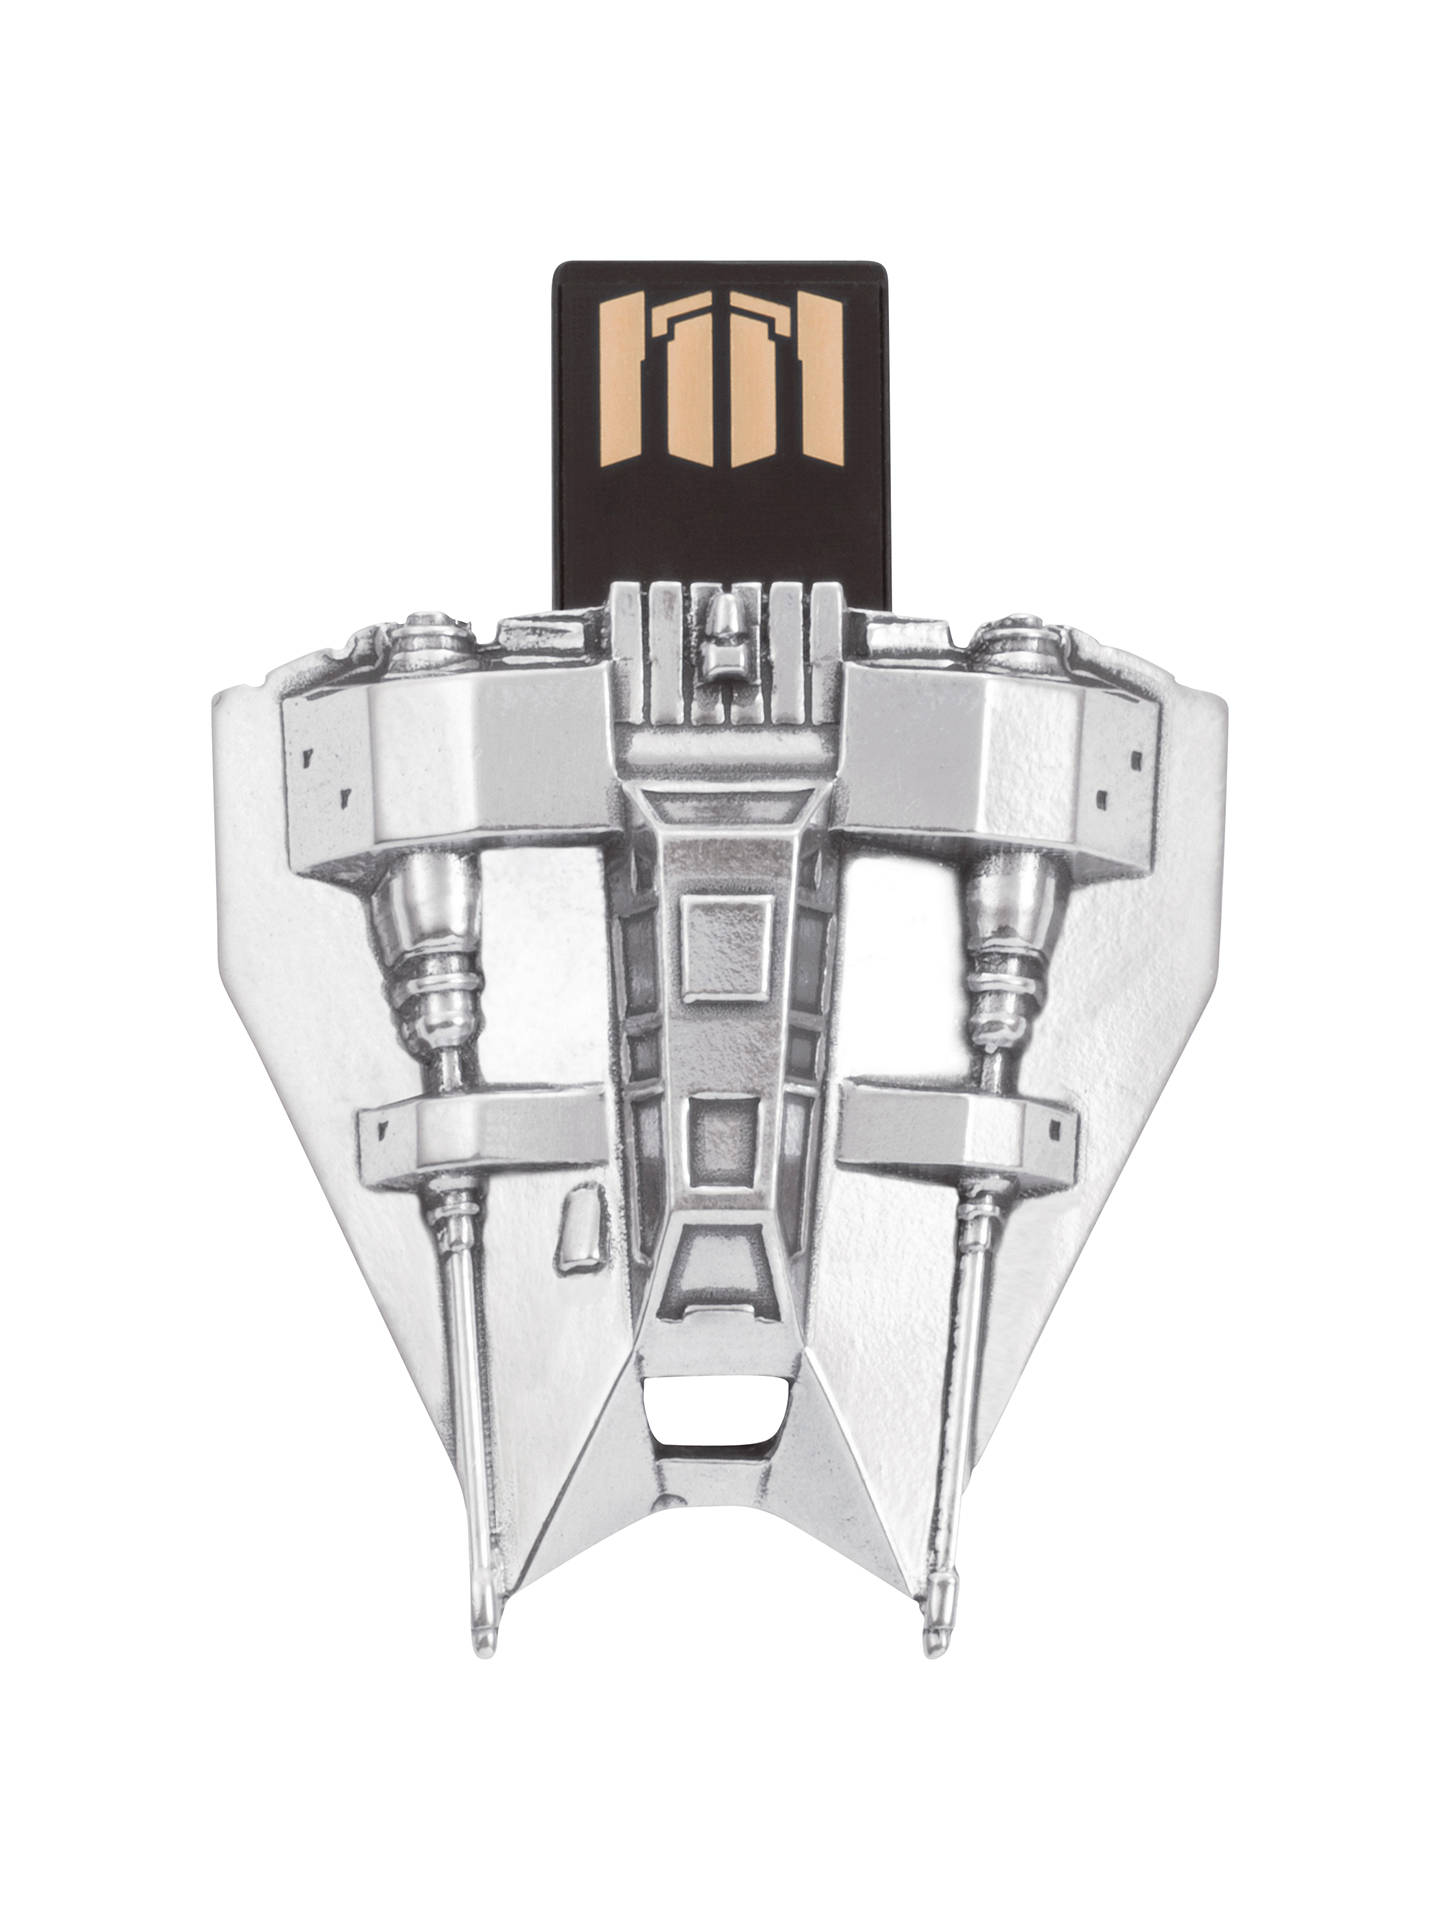 c5d0653bfab1 Buy Royal Selangor Star Wars Snowspeeder USB Flash Drive